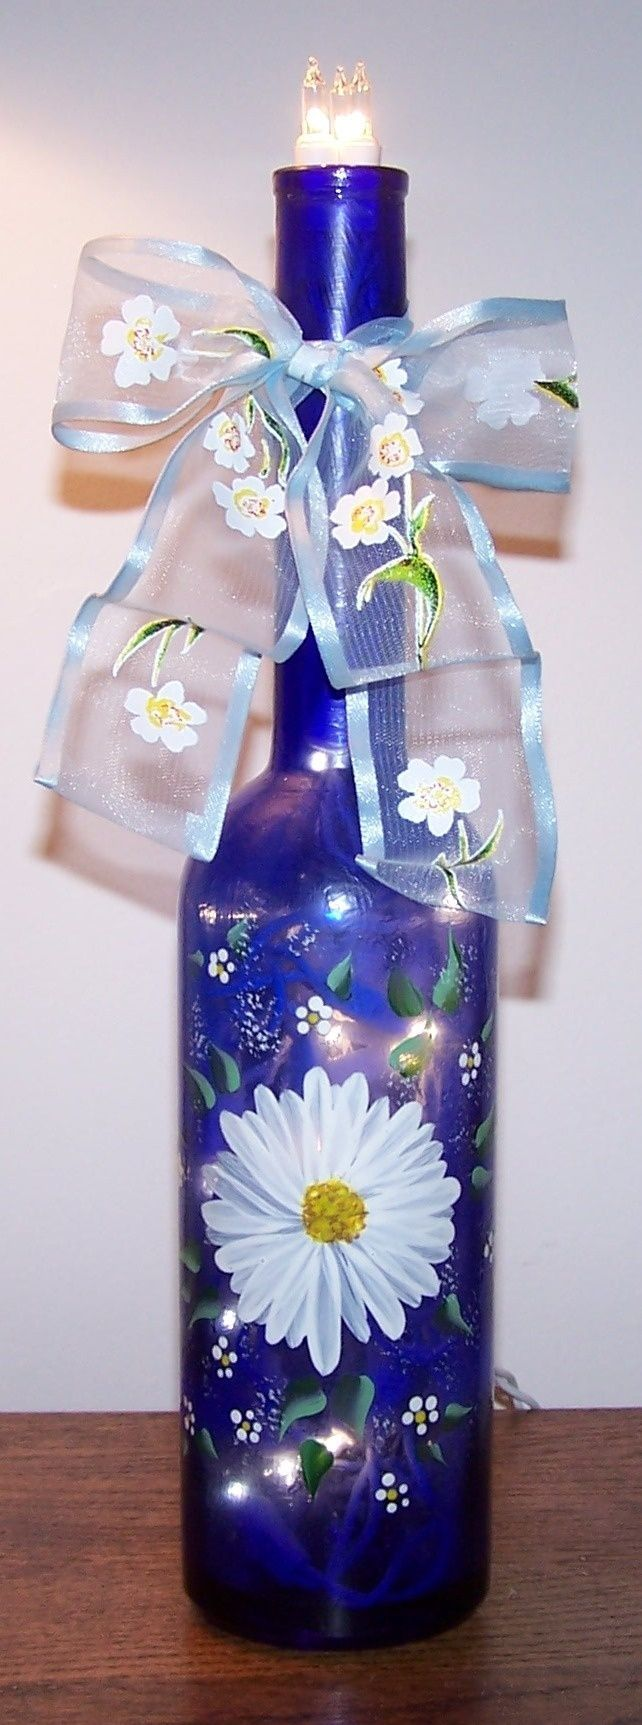 Bottle with interior lights can be painted with glass for Painting flowers on wine bottles